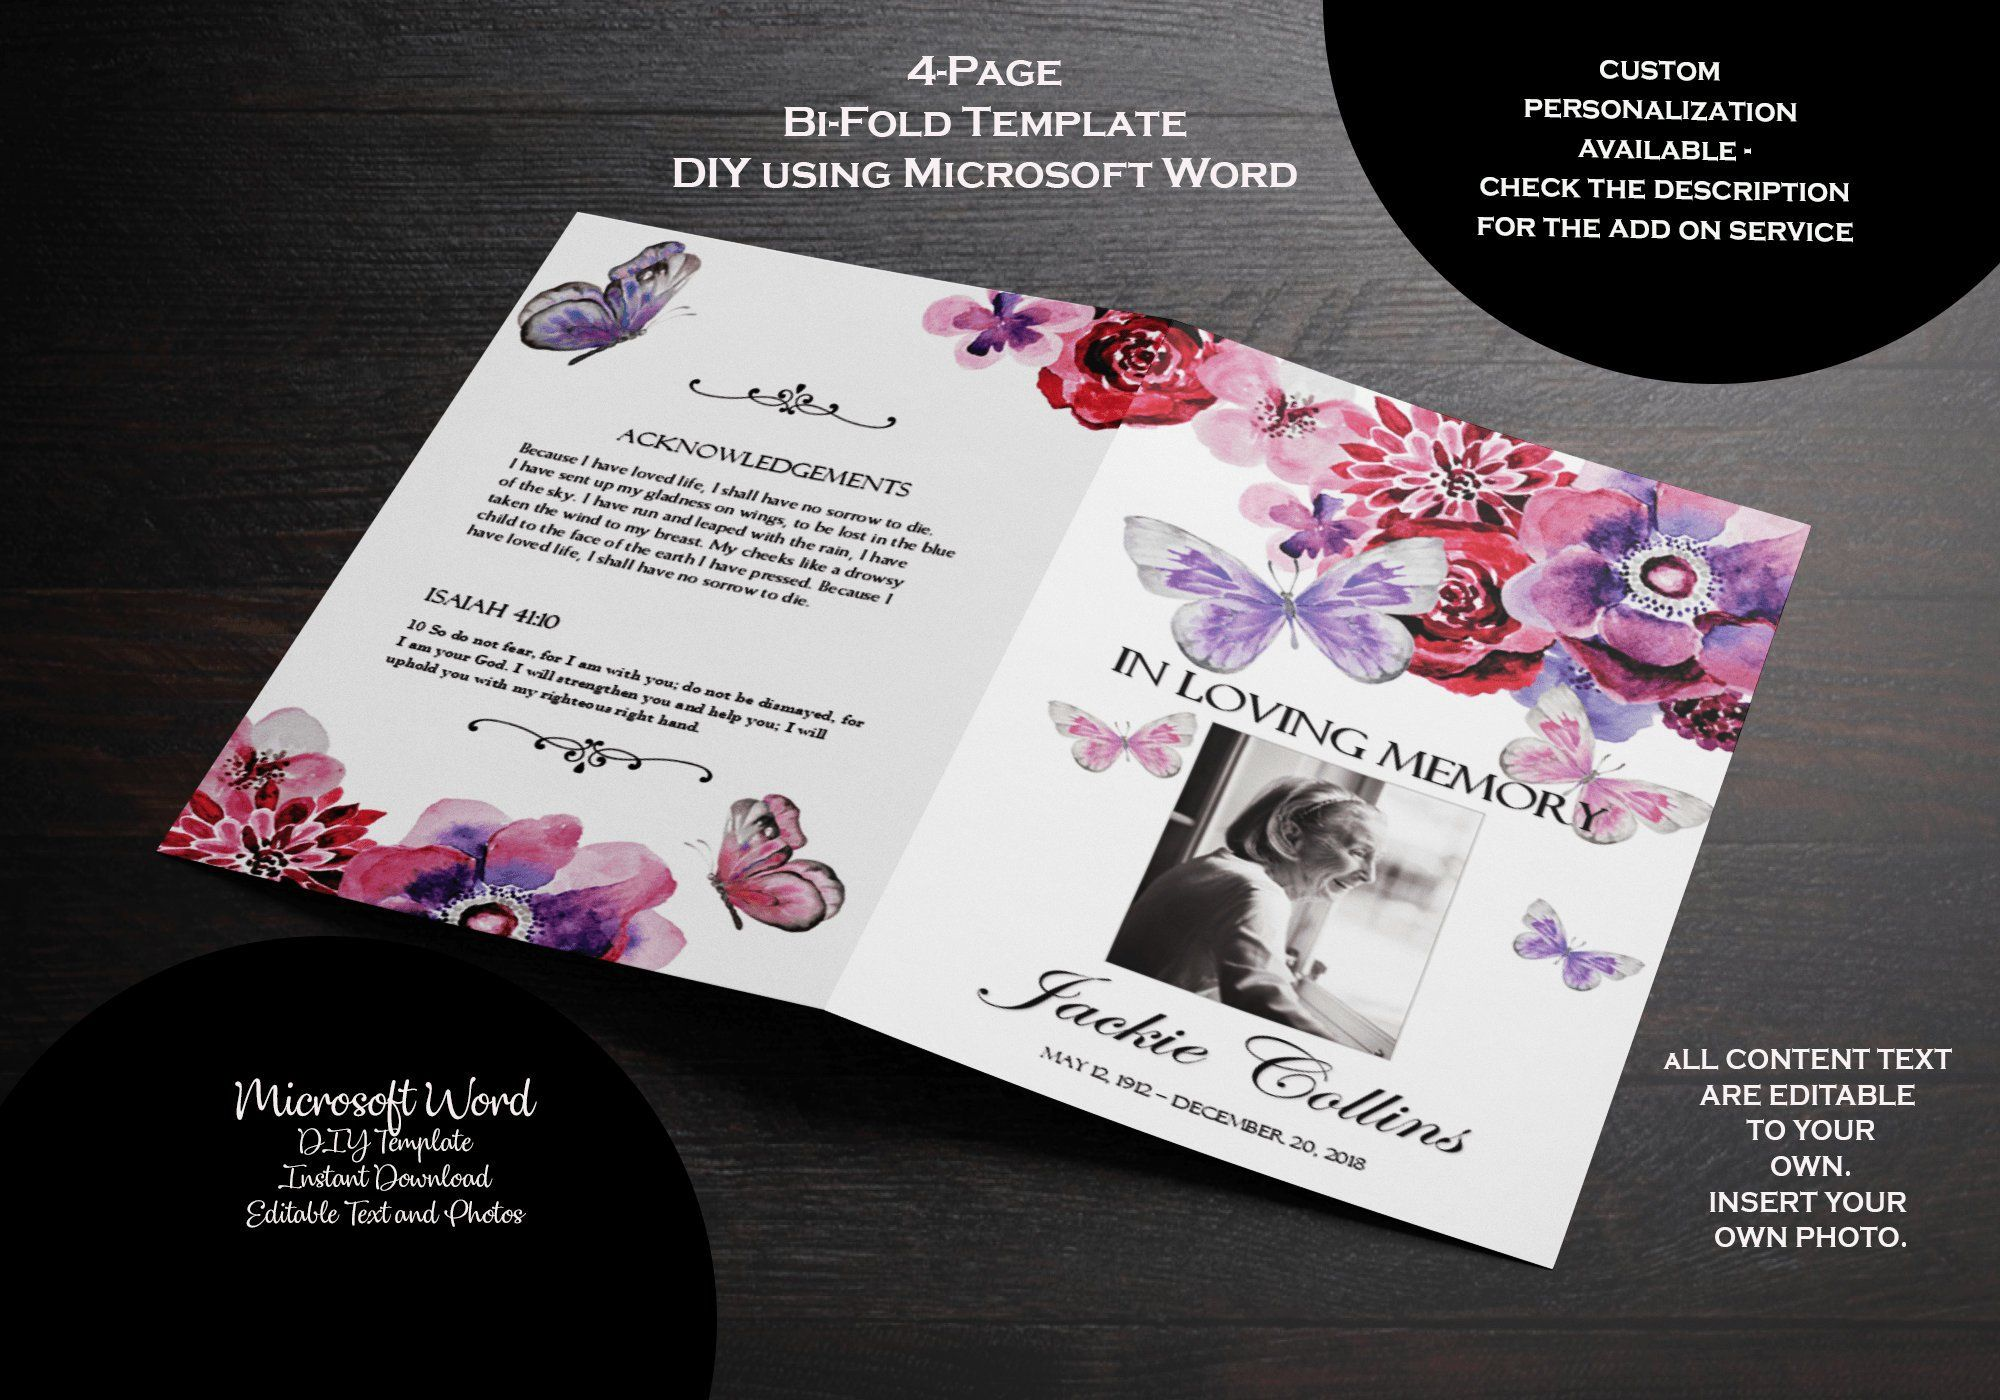 Printable Floral Memorial Service Editable with MS Word Funeral Stationery Template Red Leaves